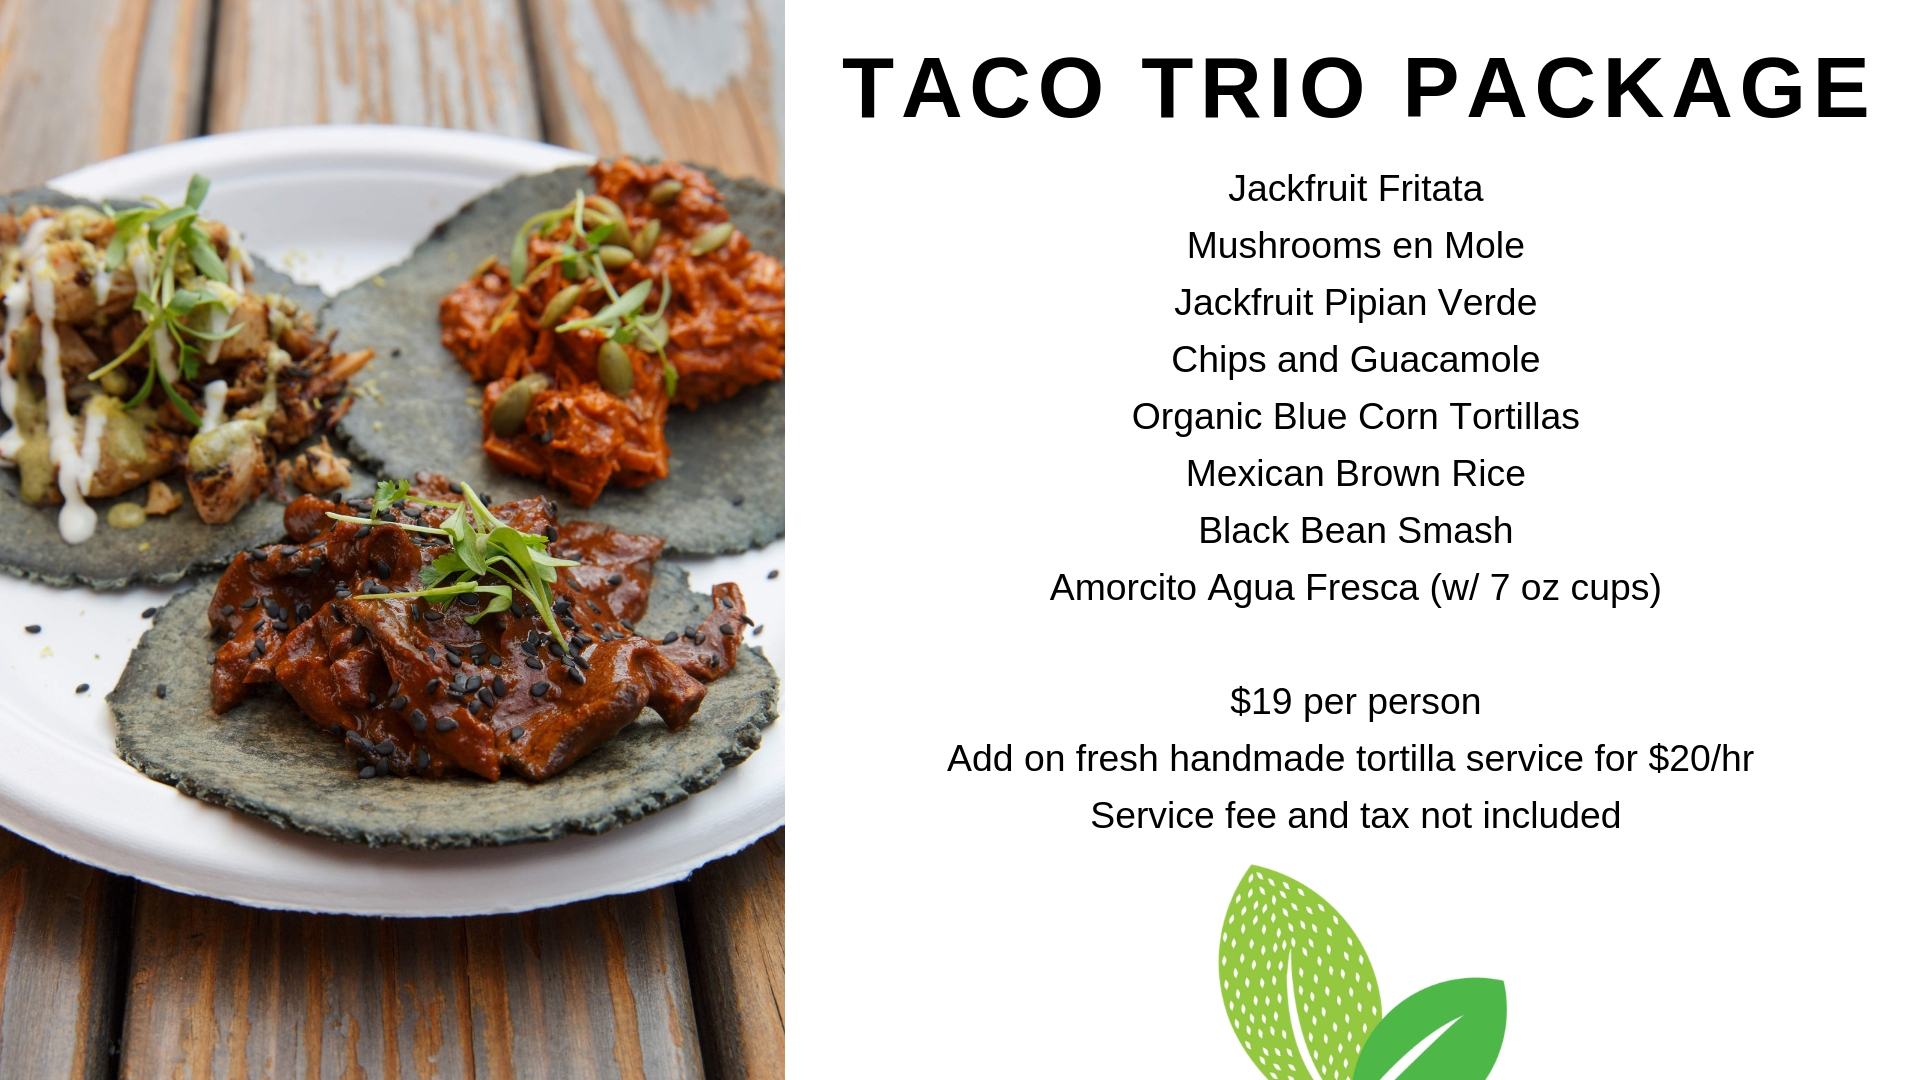 Taco Trio Package.jpg